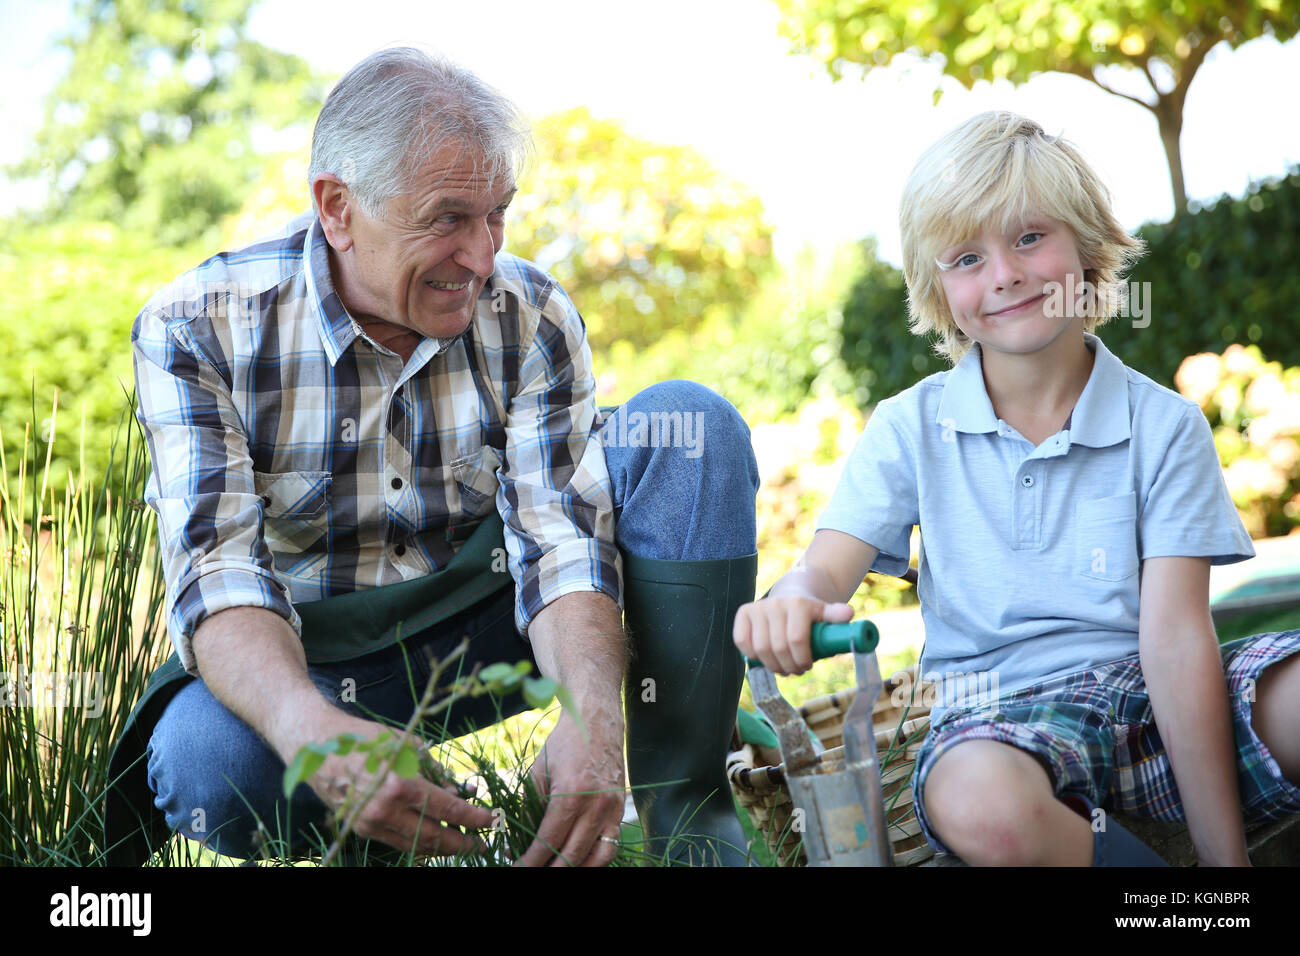 Grandpa with grandson gardening together in summer time - Stock Image